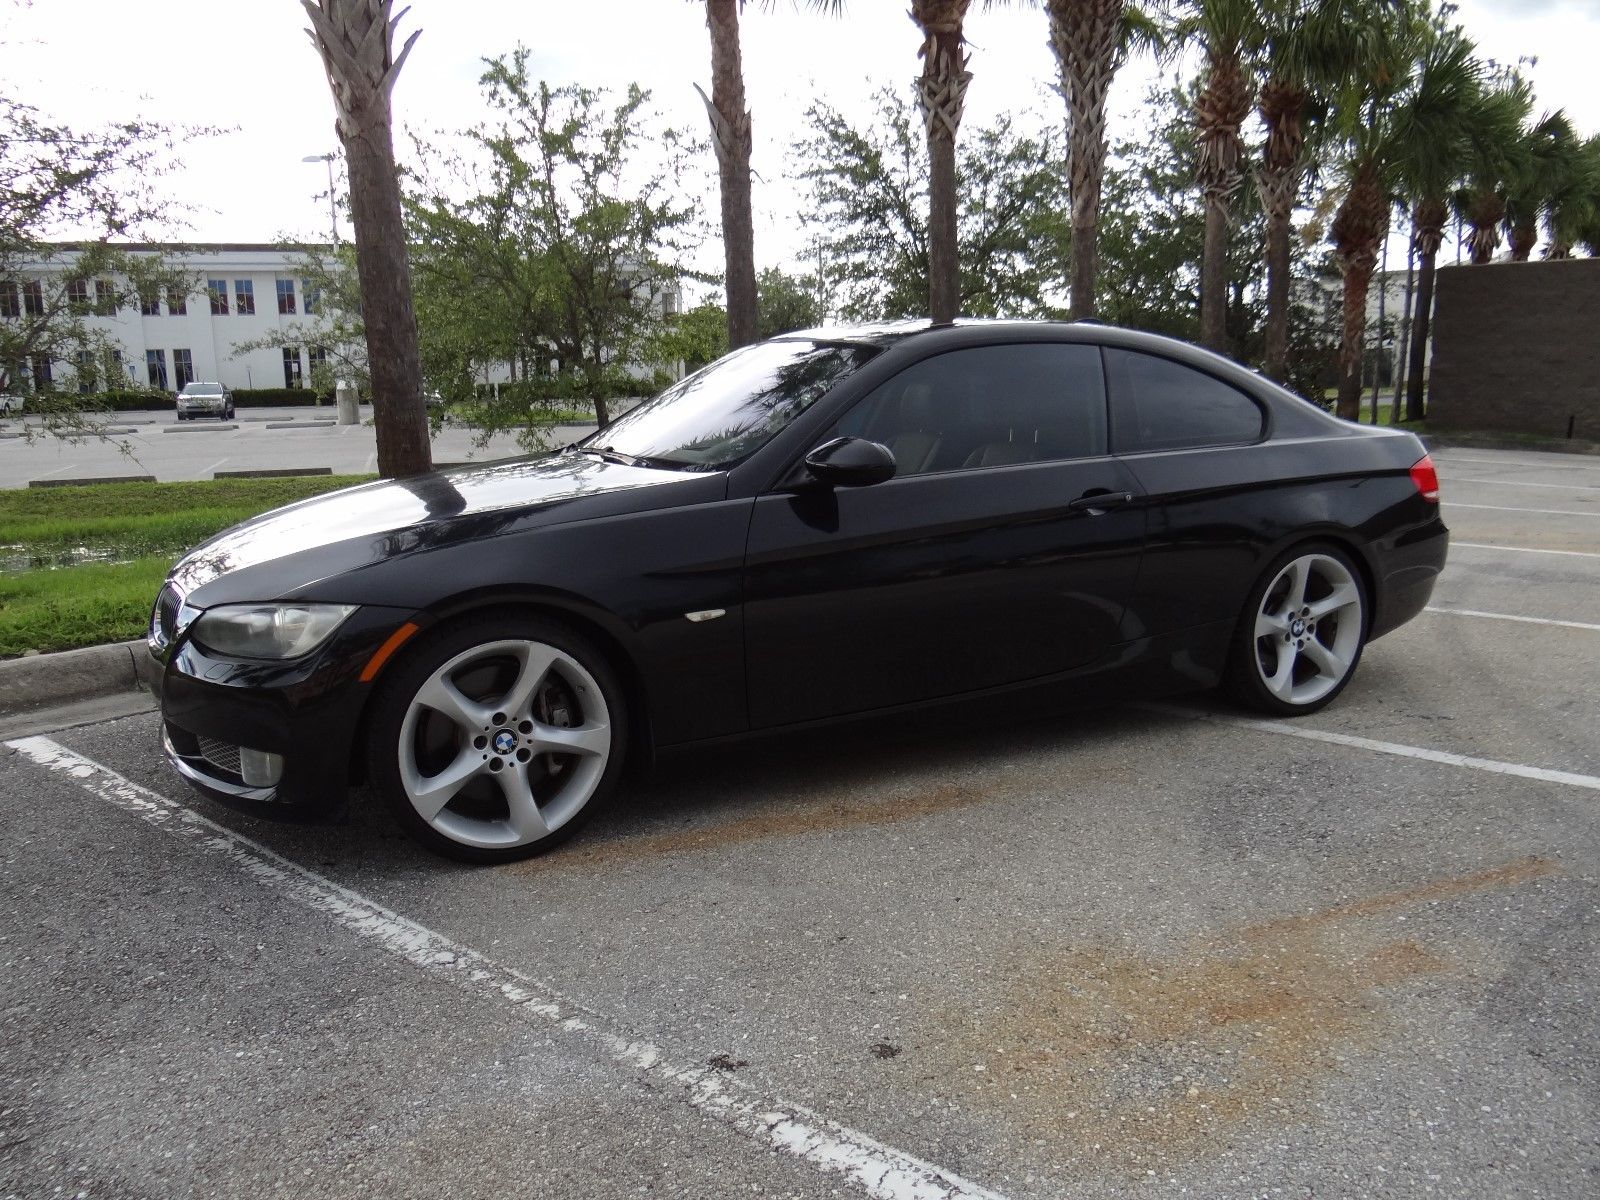 Awesome 2009 Bmw 3 Series 335i Coupe Sport Pkg 2009 Bmw 335i Turbo Coupe Sport Pkg Florida Car 2 Owners Good Shape Clear Title 2018 2019